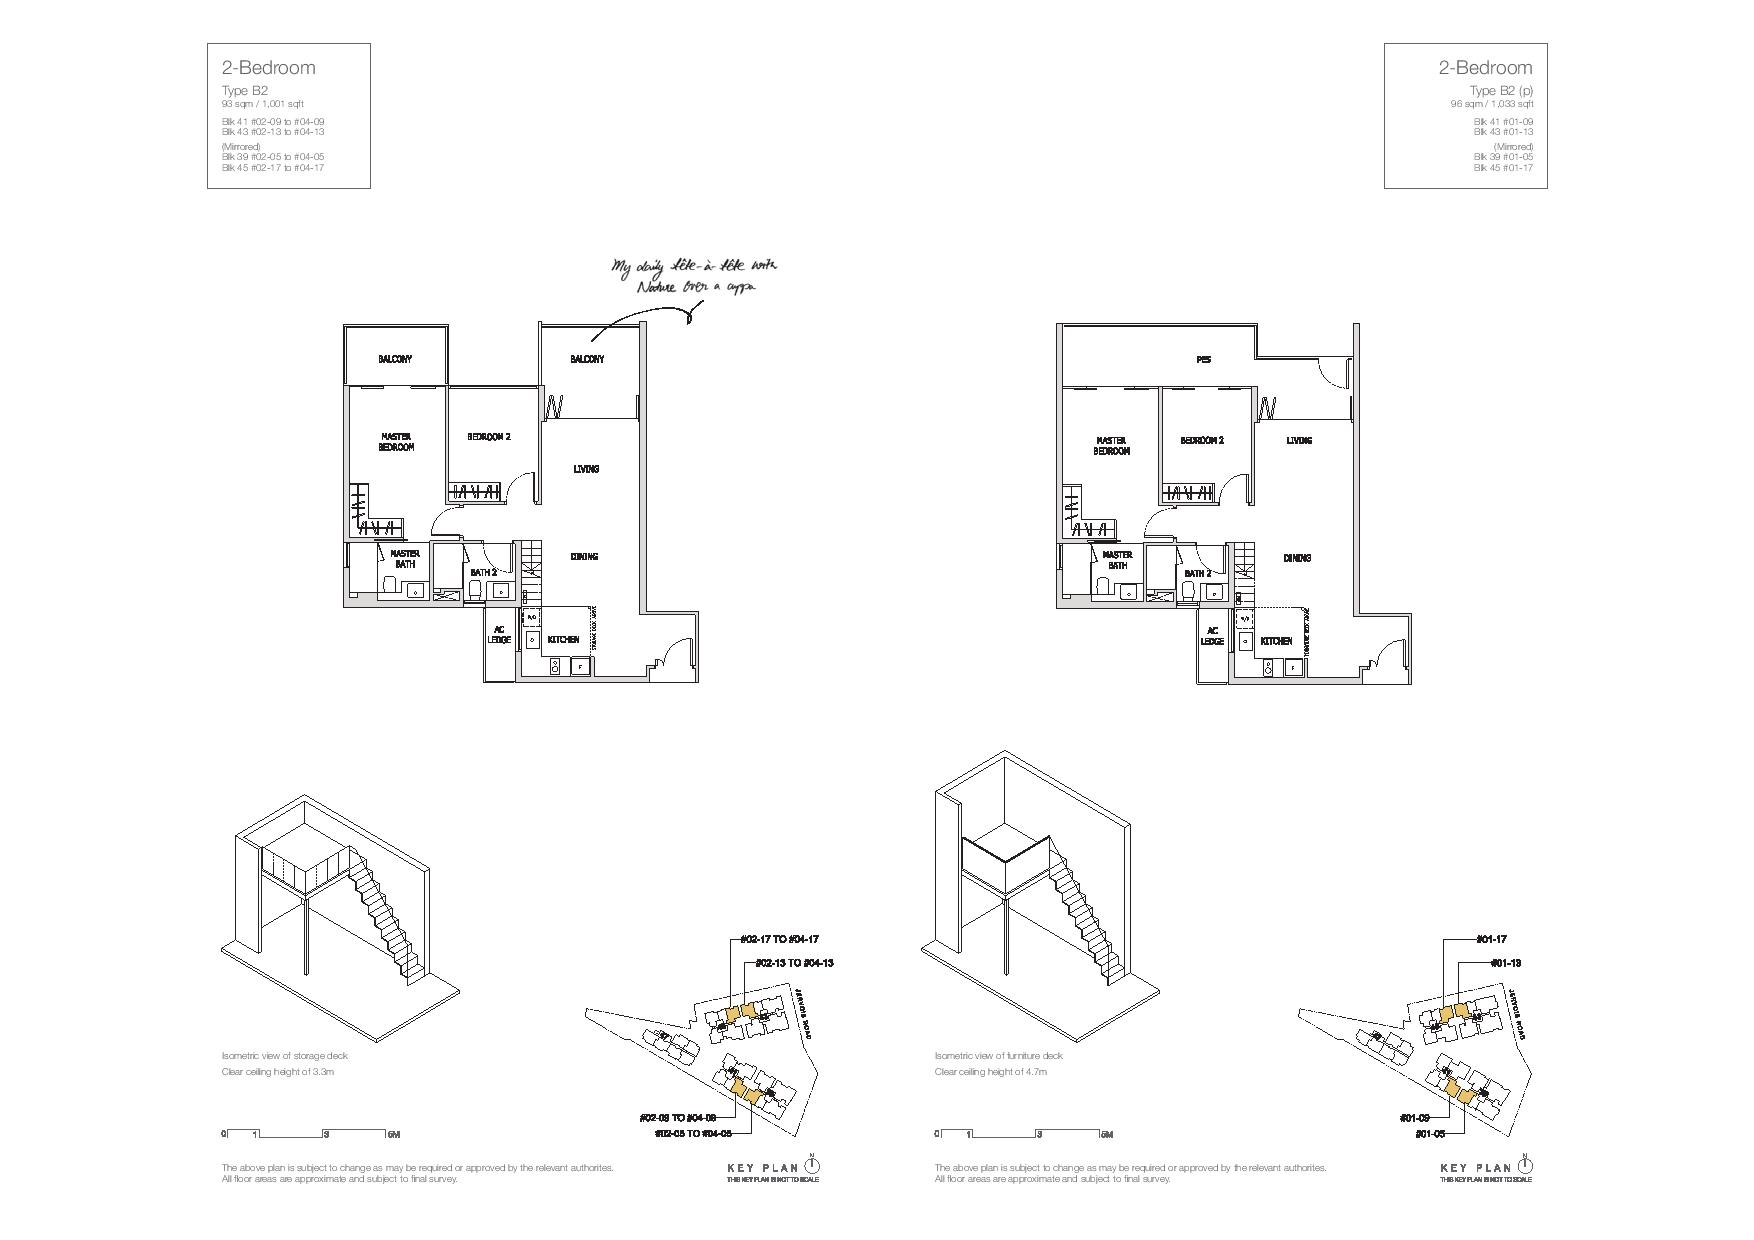 Mon Jervois 2 Bedroom Floor Plans Type Type B2, B2(p)